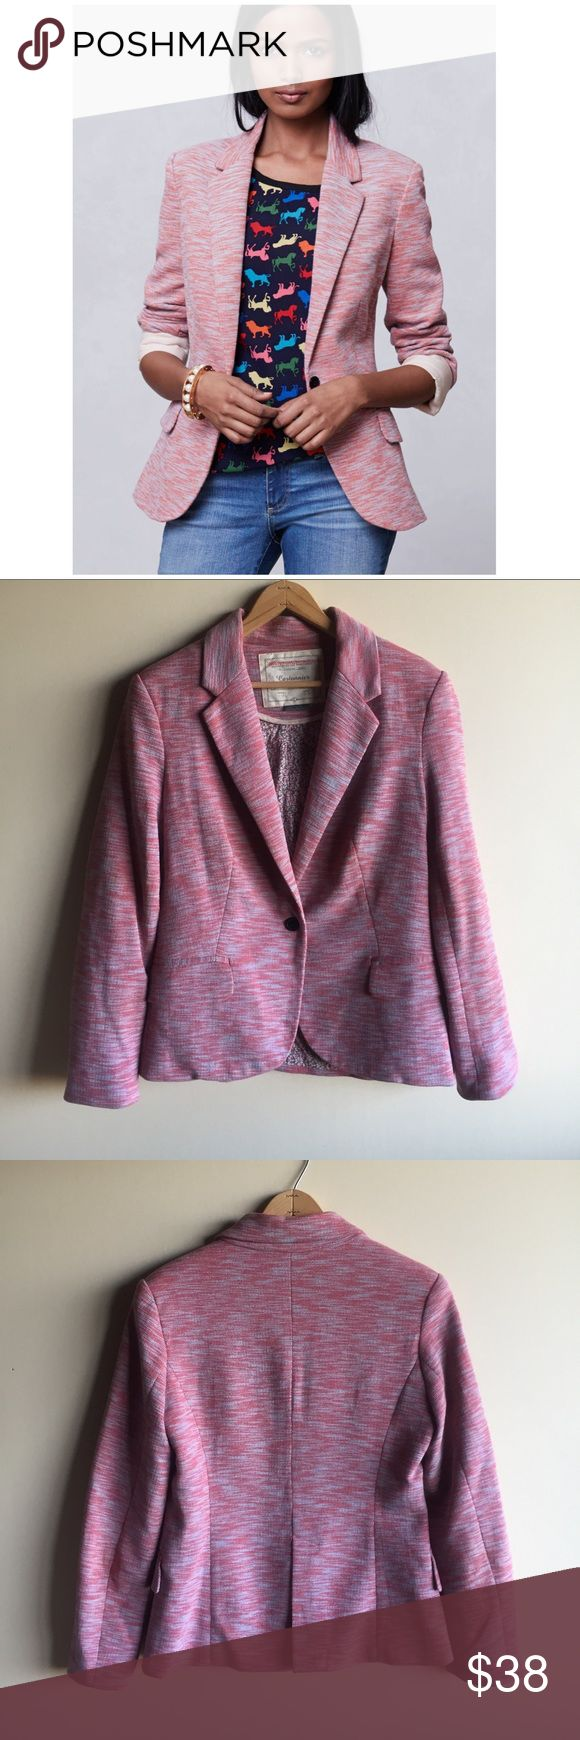 """Anthropologie Cartonnier tonal knit blazer Cartonnier knit blazer in red and a blue -ish grey. One button closure. Cute floral lining. Gently worn in great condition! Measures 20"""" from underarm to underarm and 25"""" long. Anthropologie Jackets & Coats Blazers"""